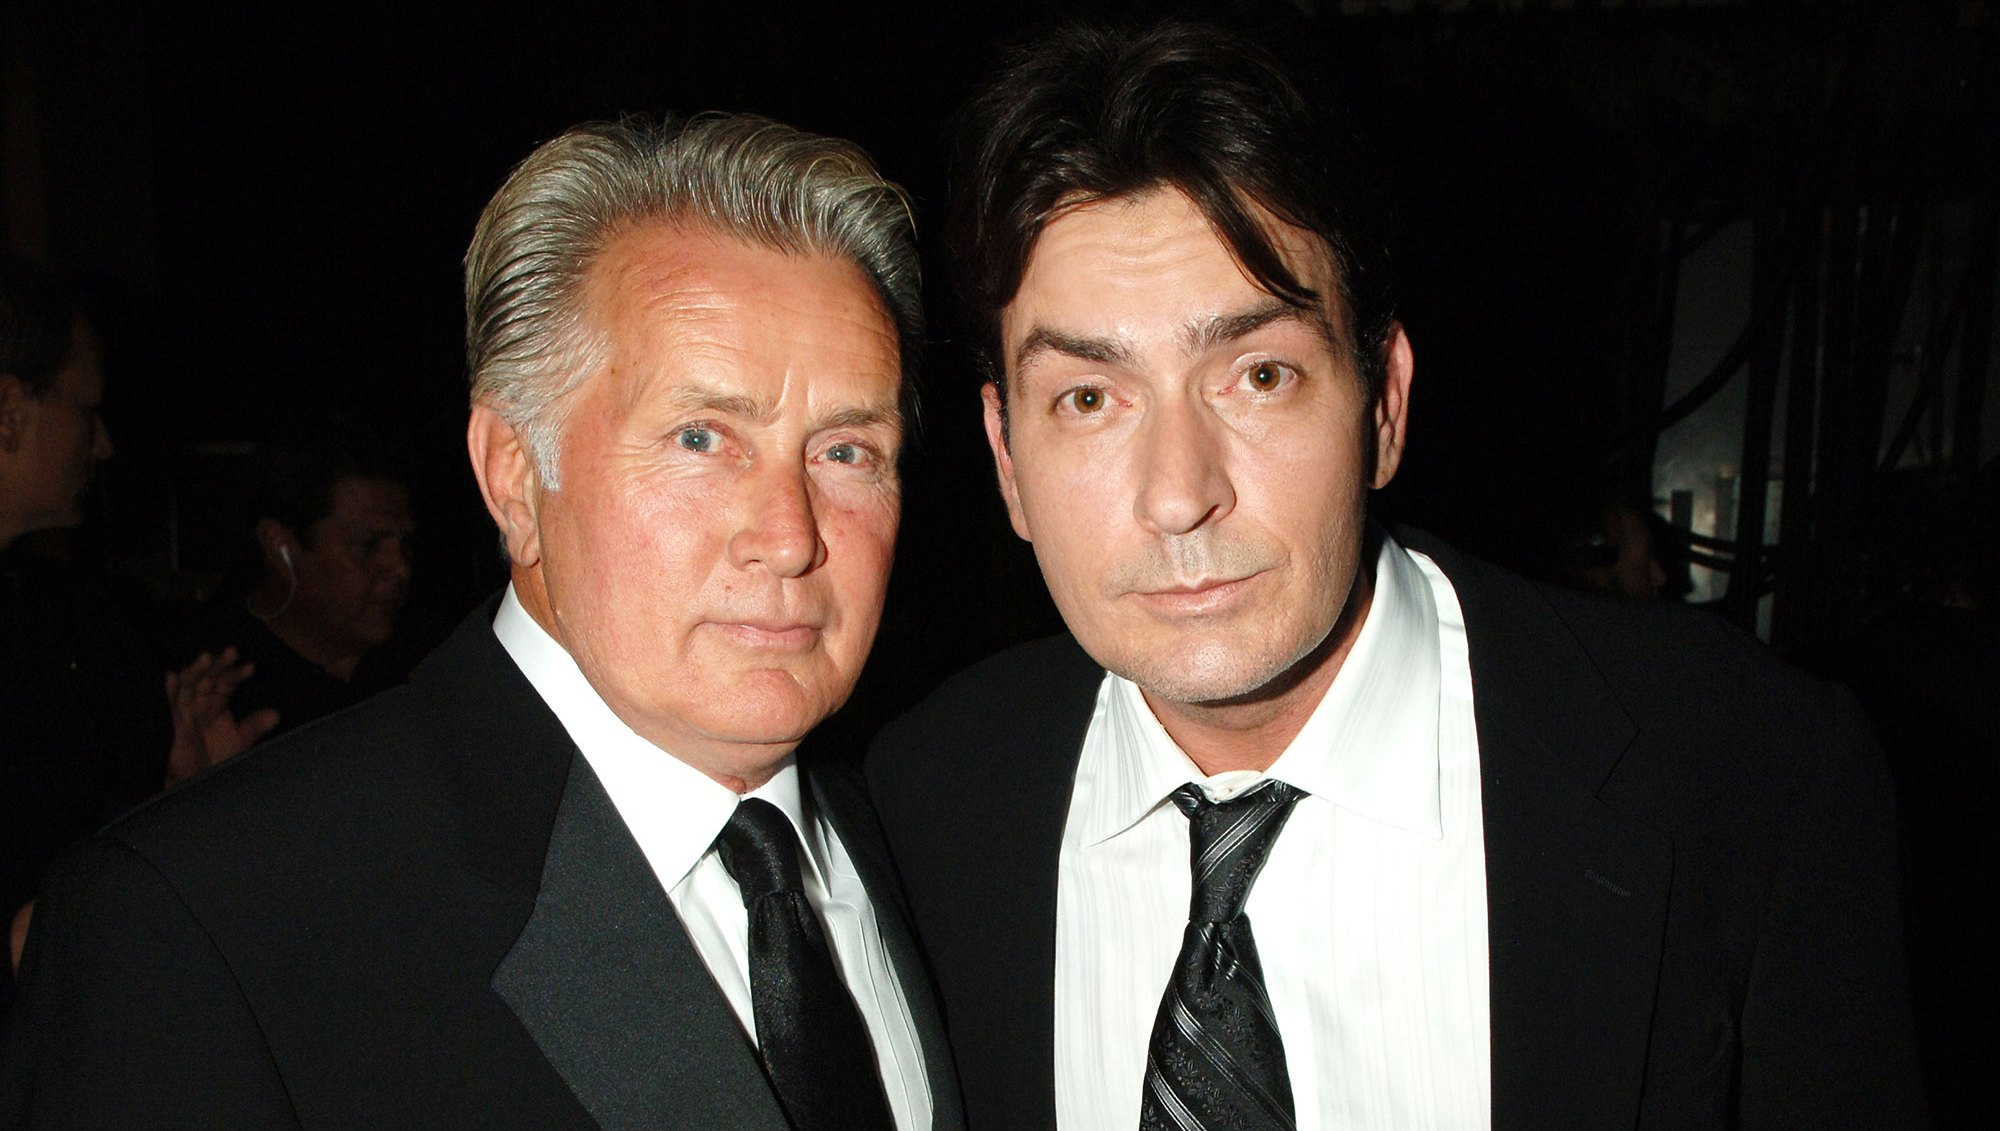 Martin Sheen and Charlie Sheen, presenters